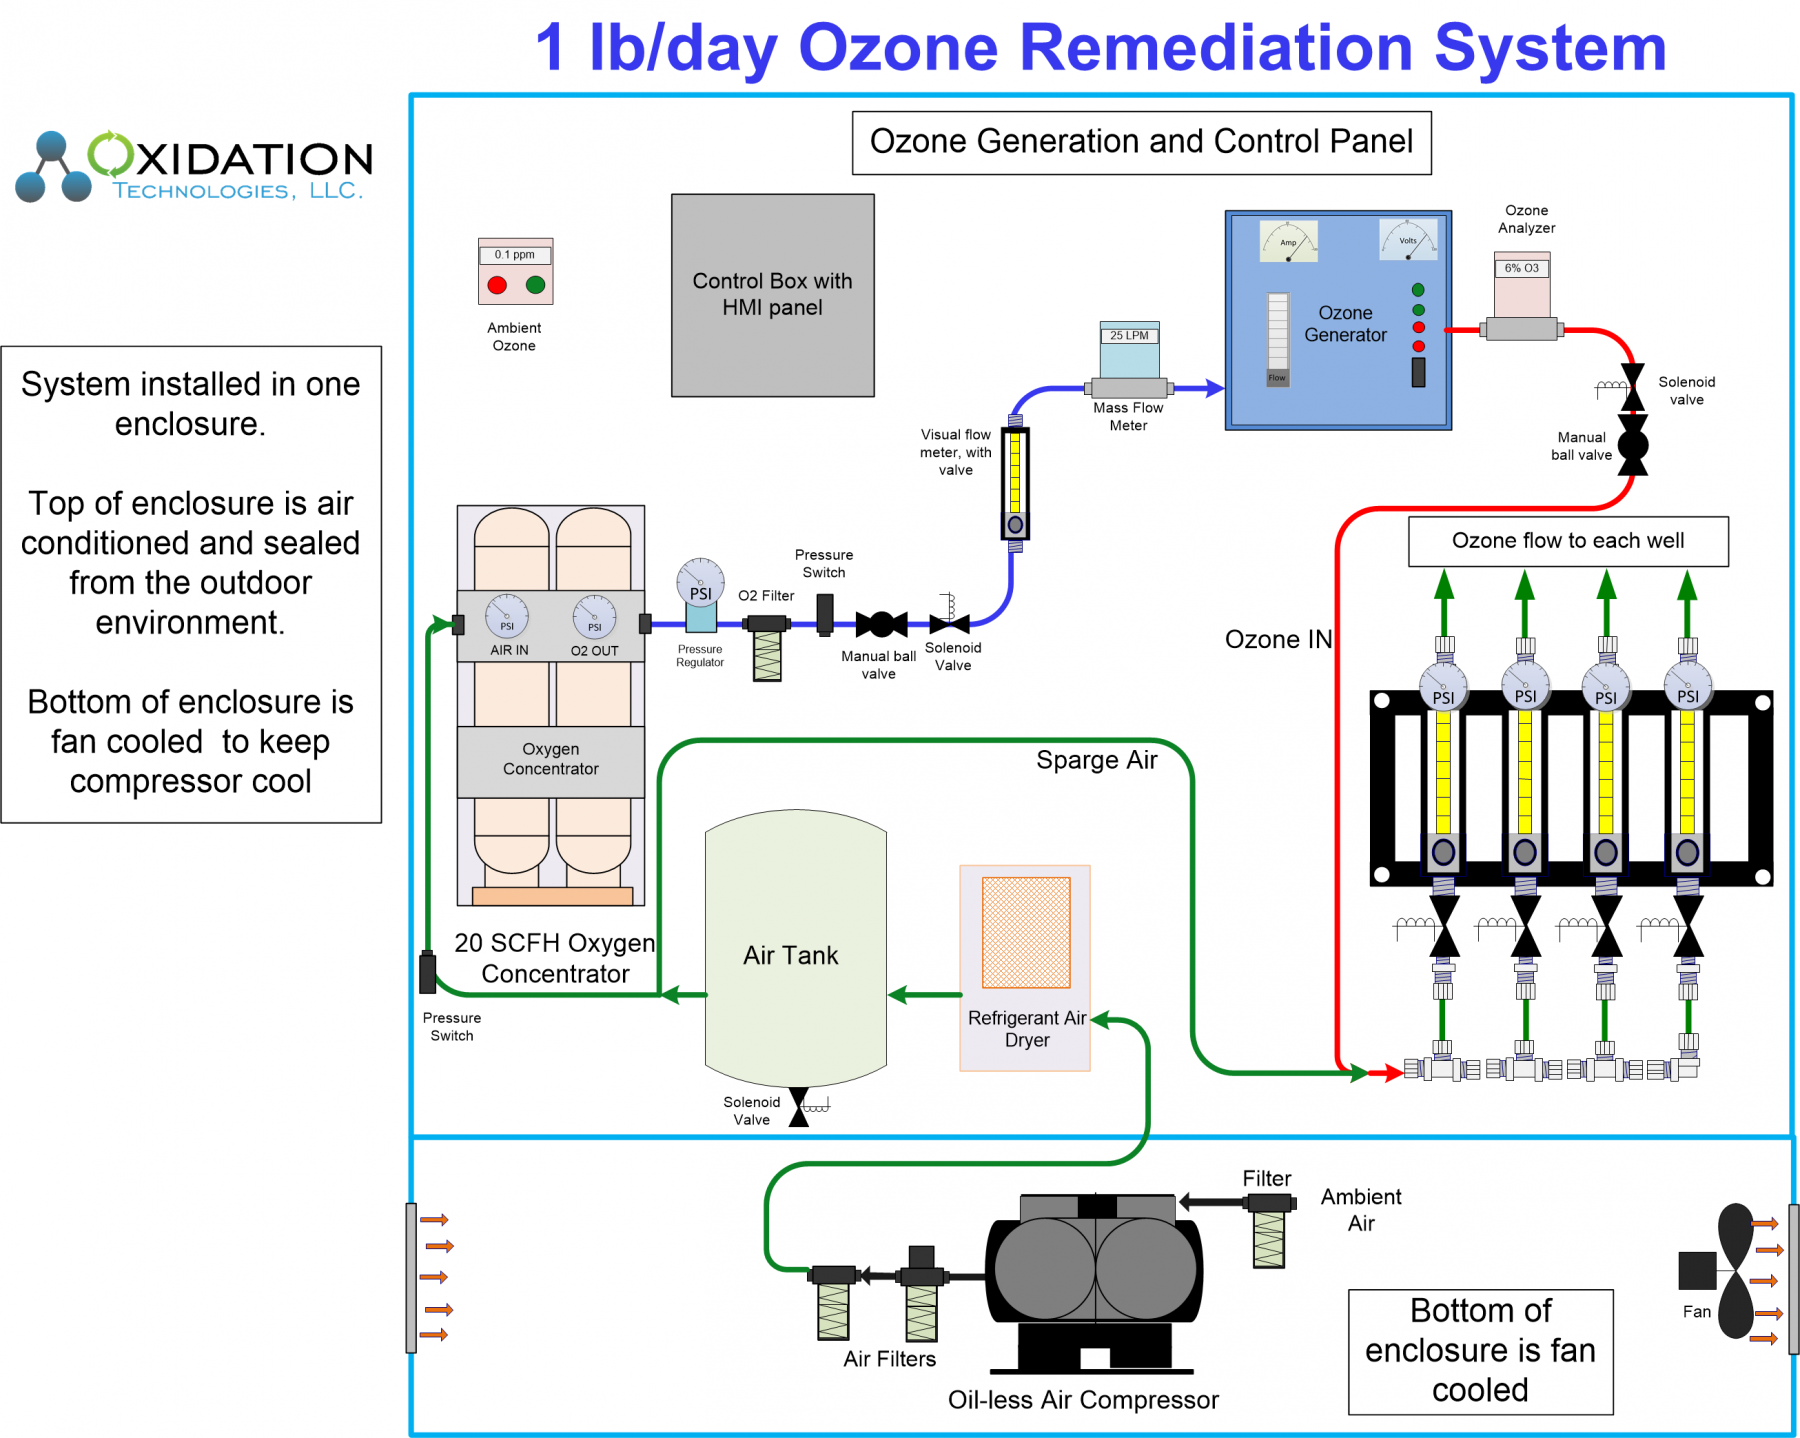 ozone equipment manufacturer and ozone system integrators compact